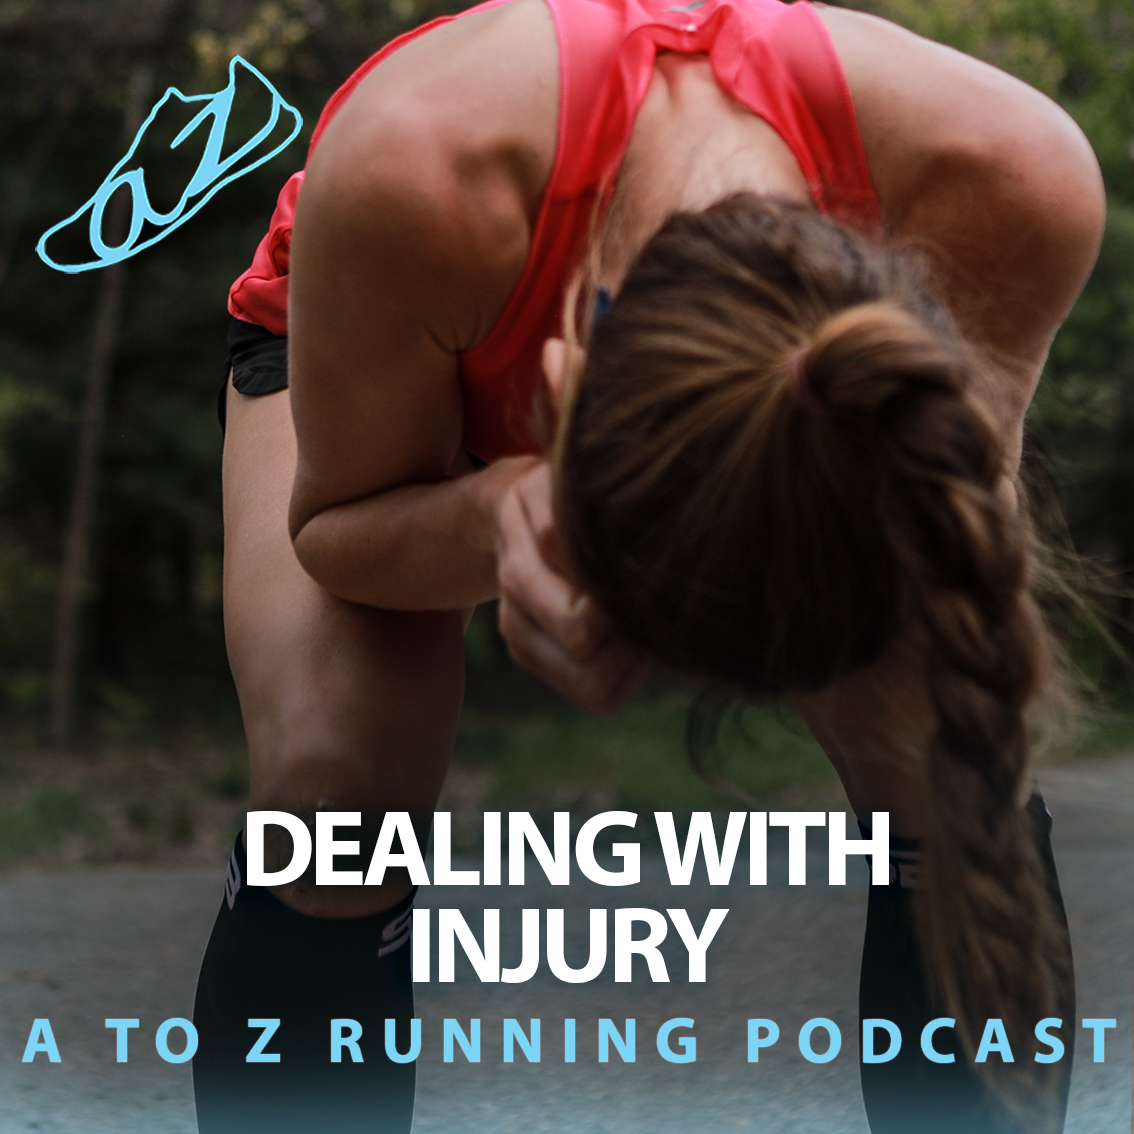 Dealing with injury atozrunning